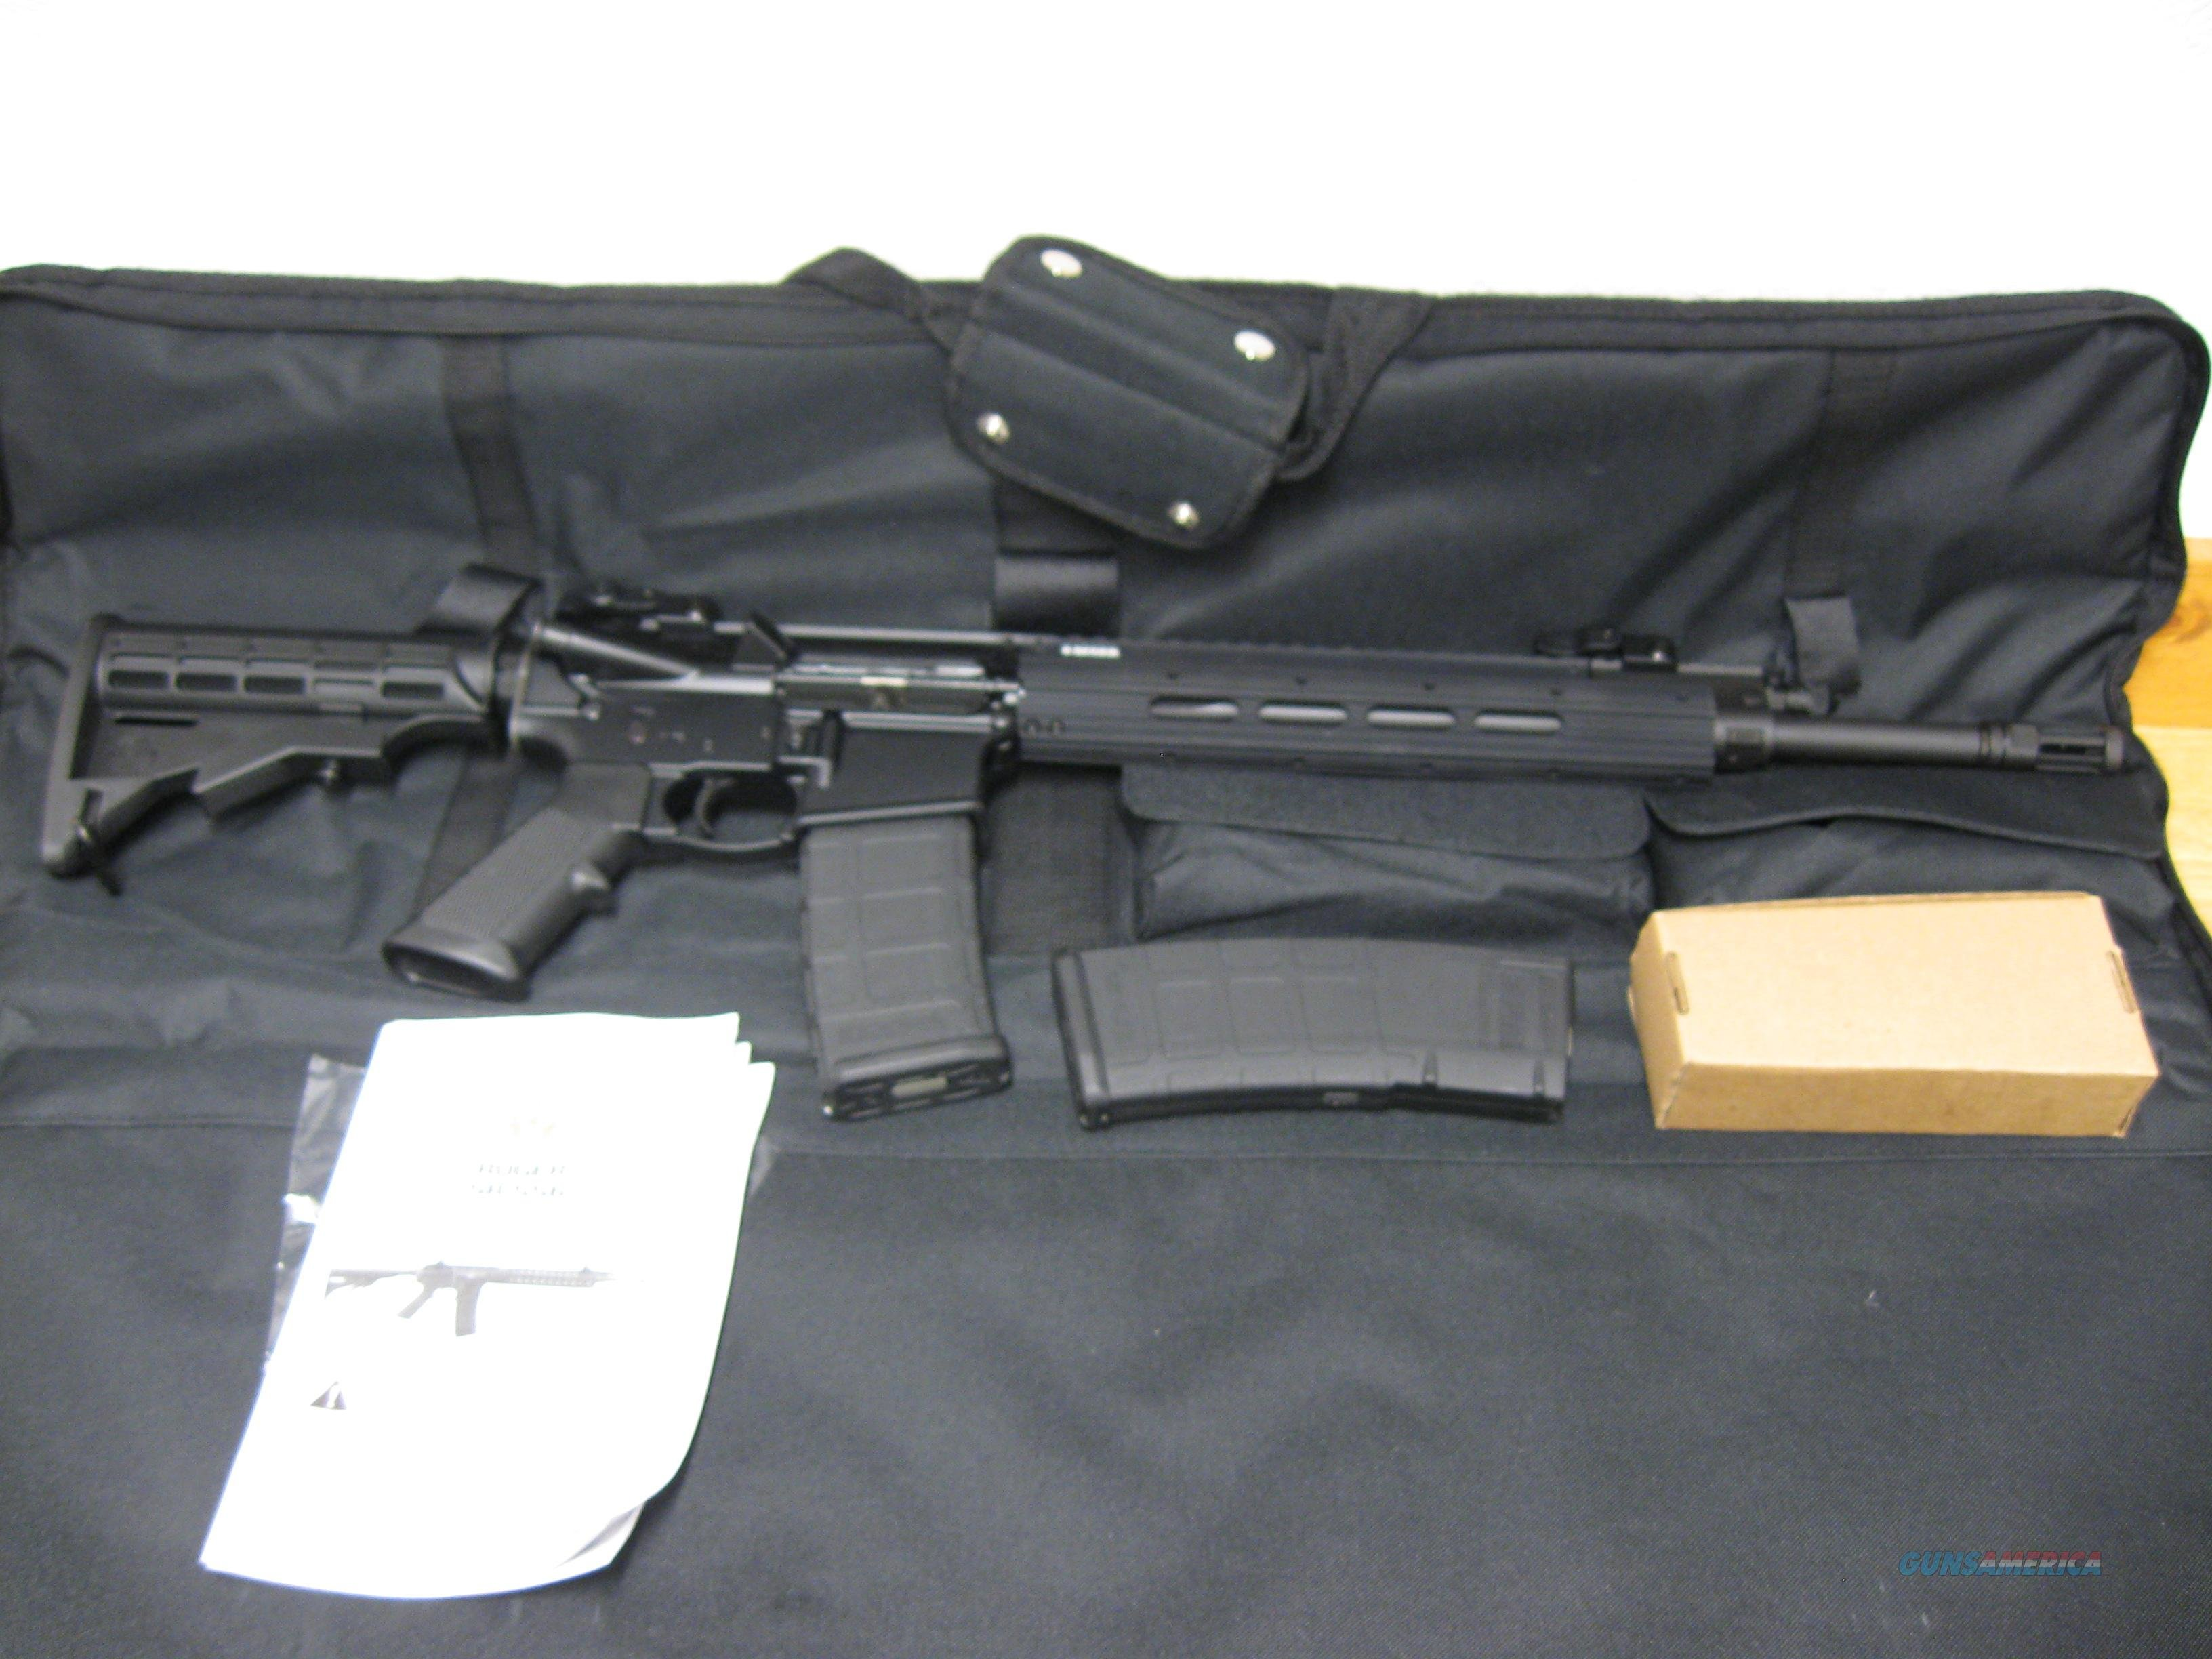 Ruger SR556E Semi-Auto AR-15 Rifle 5912, 223 Remington, 16 in, Collapsible Stock, Black Finish, 30 Rd     Guns > Rifles > Ruger Rifles > SR-556